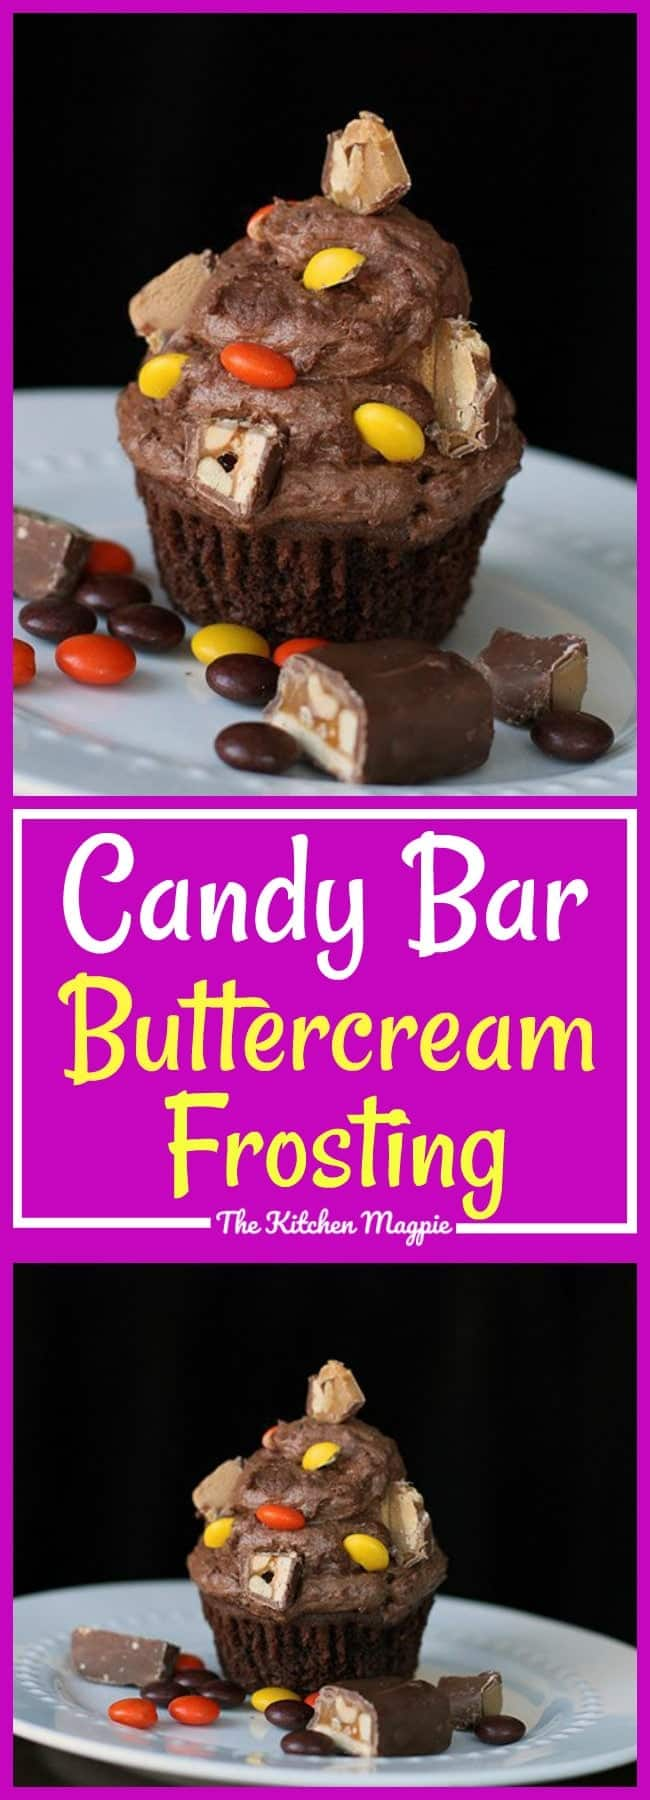 Candy Bar Buttercream Frosting. My chocolate buttercream frosting recipe with crushed candy bars, oh, what a perfect party icing this is!